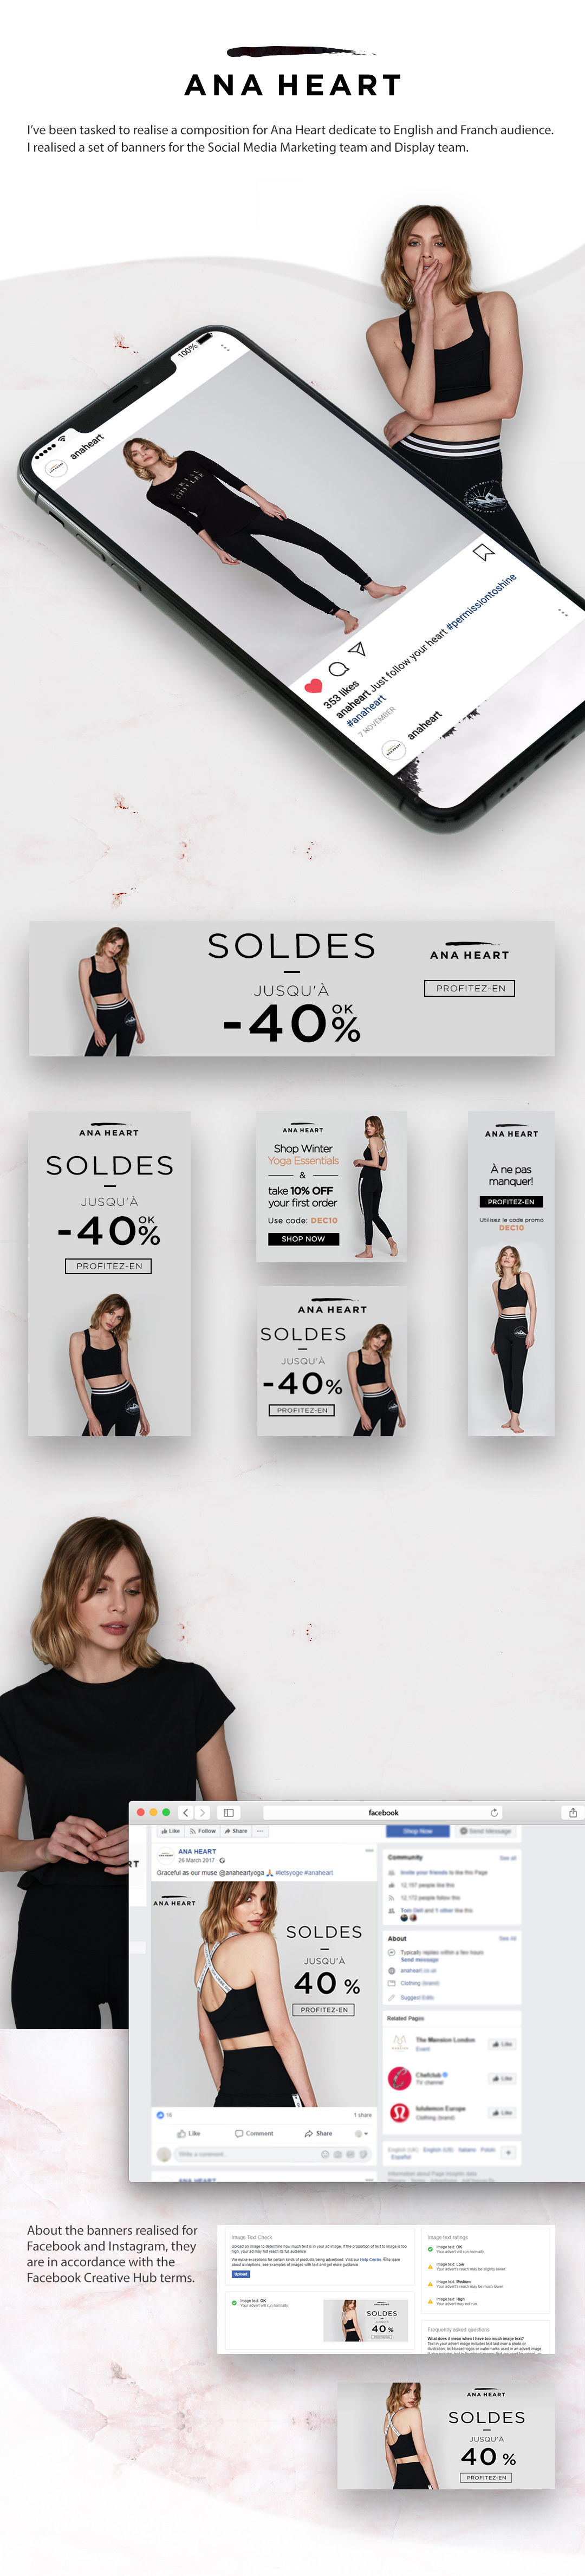 Fashion  ana heart banners Advertising  ads